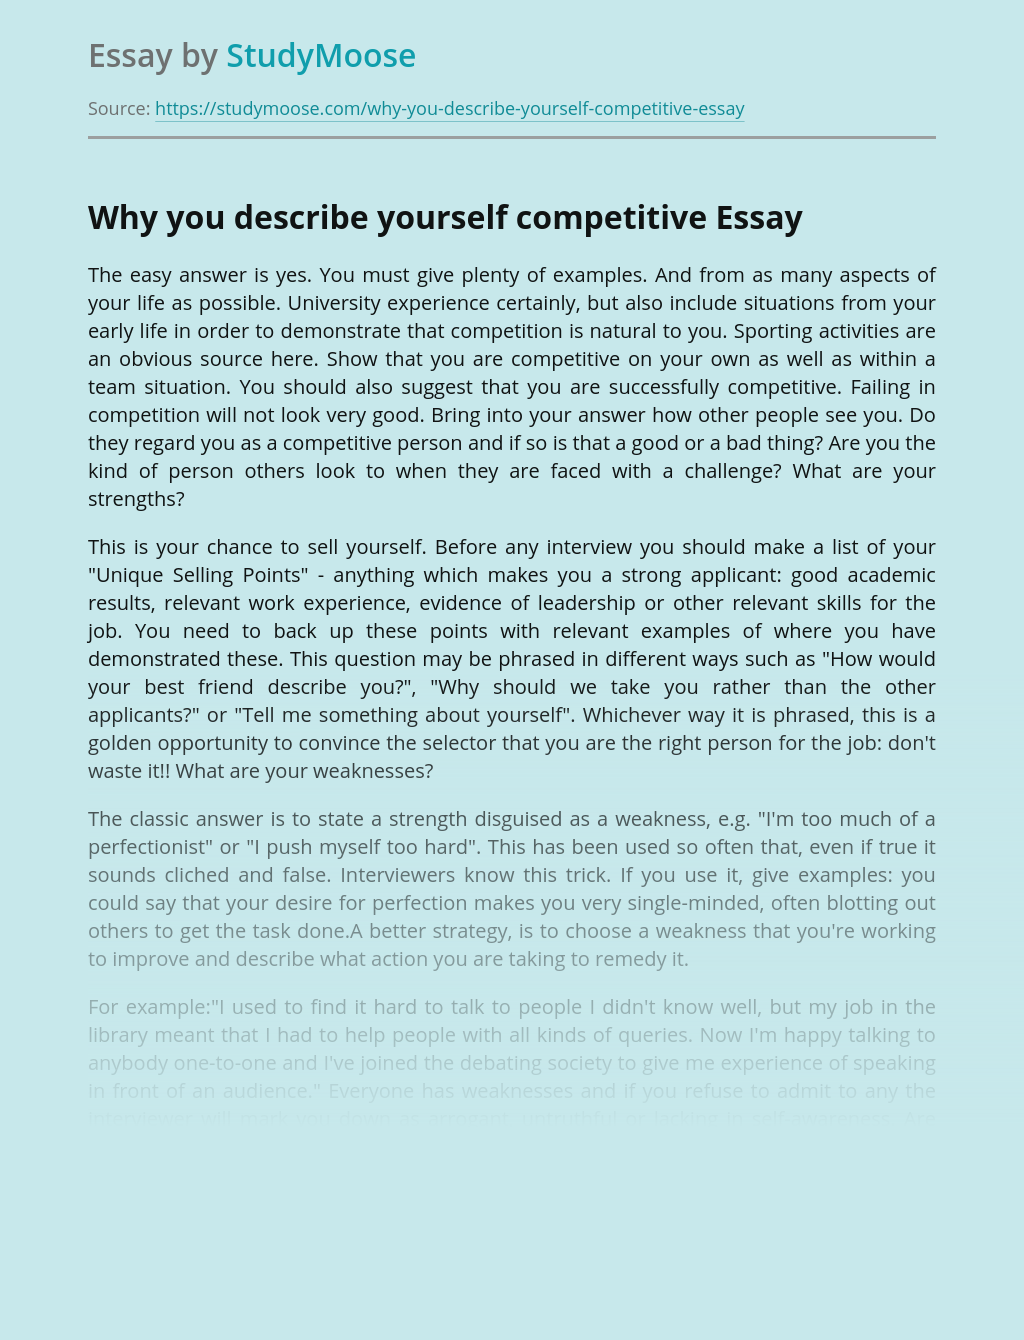 Why you describe yourself competitive